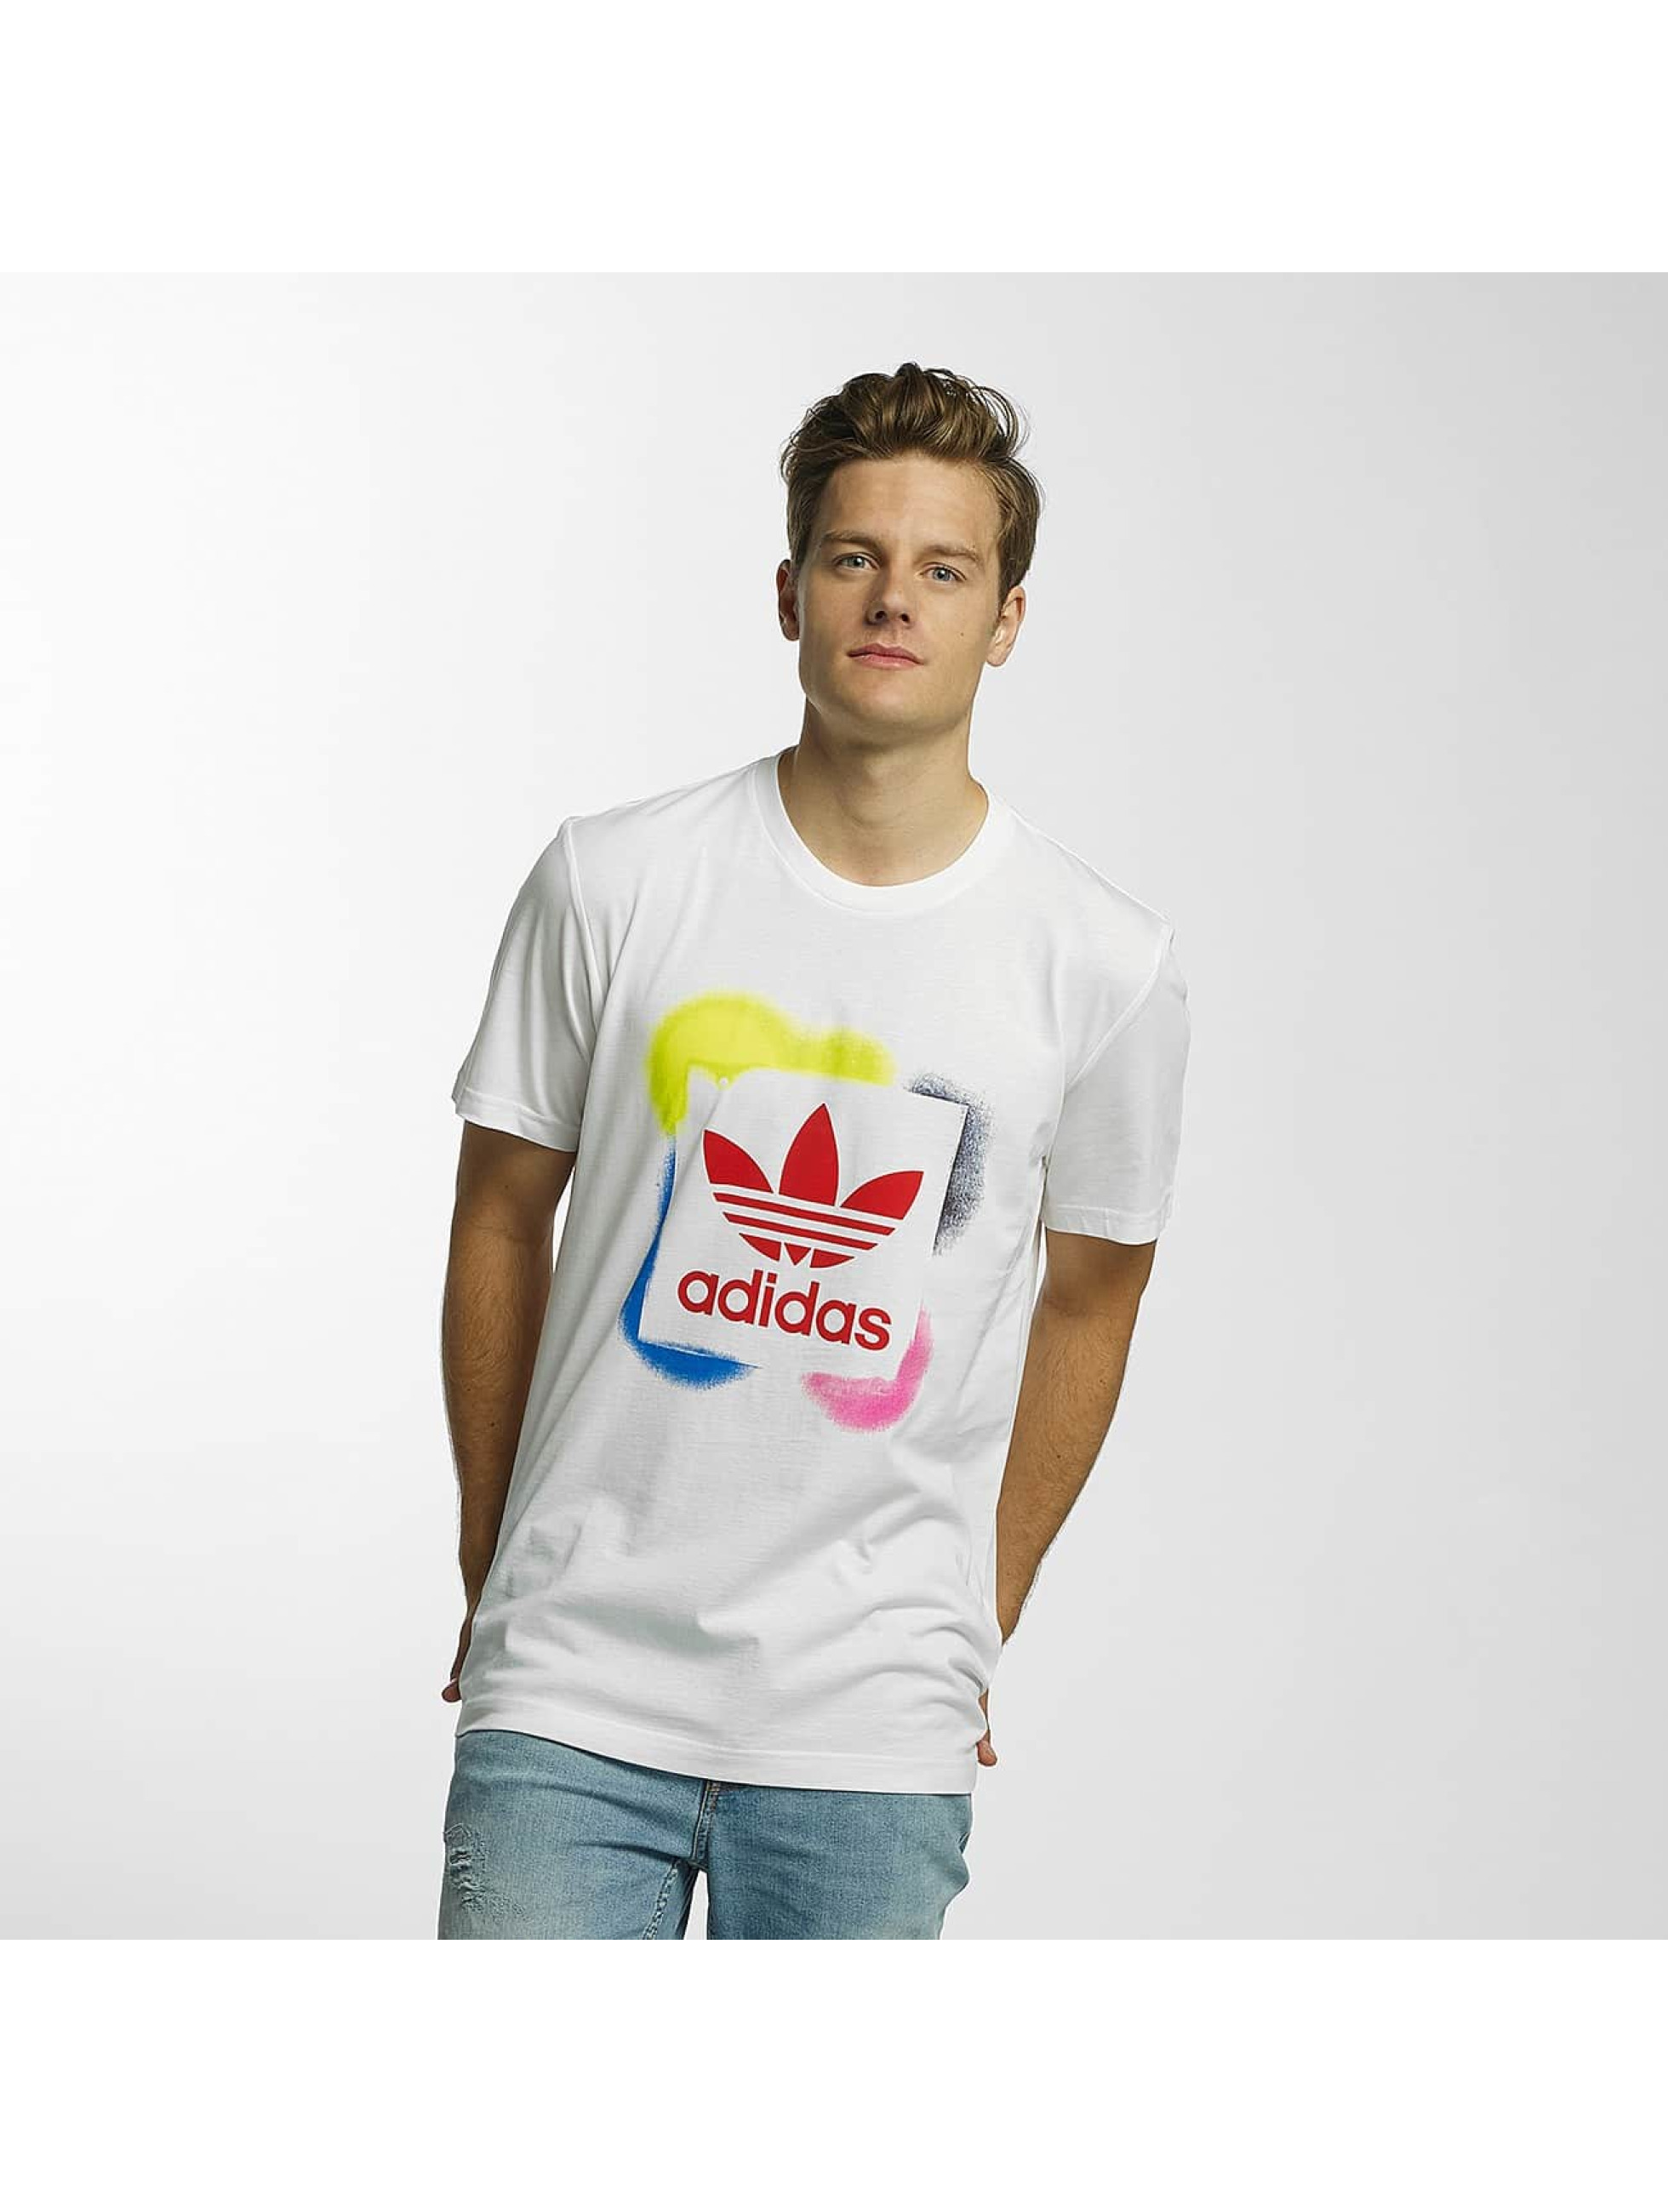 adidas Männer T-Shirt Rectangle 1 in weiß